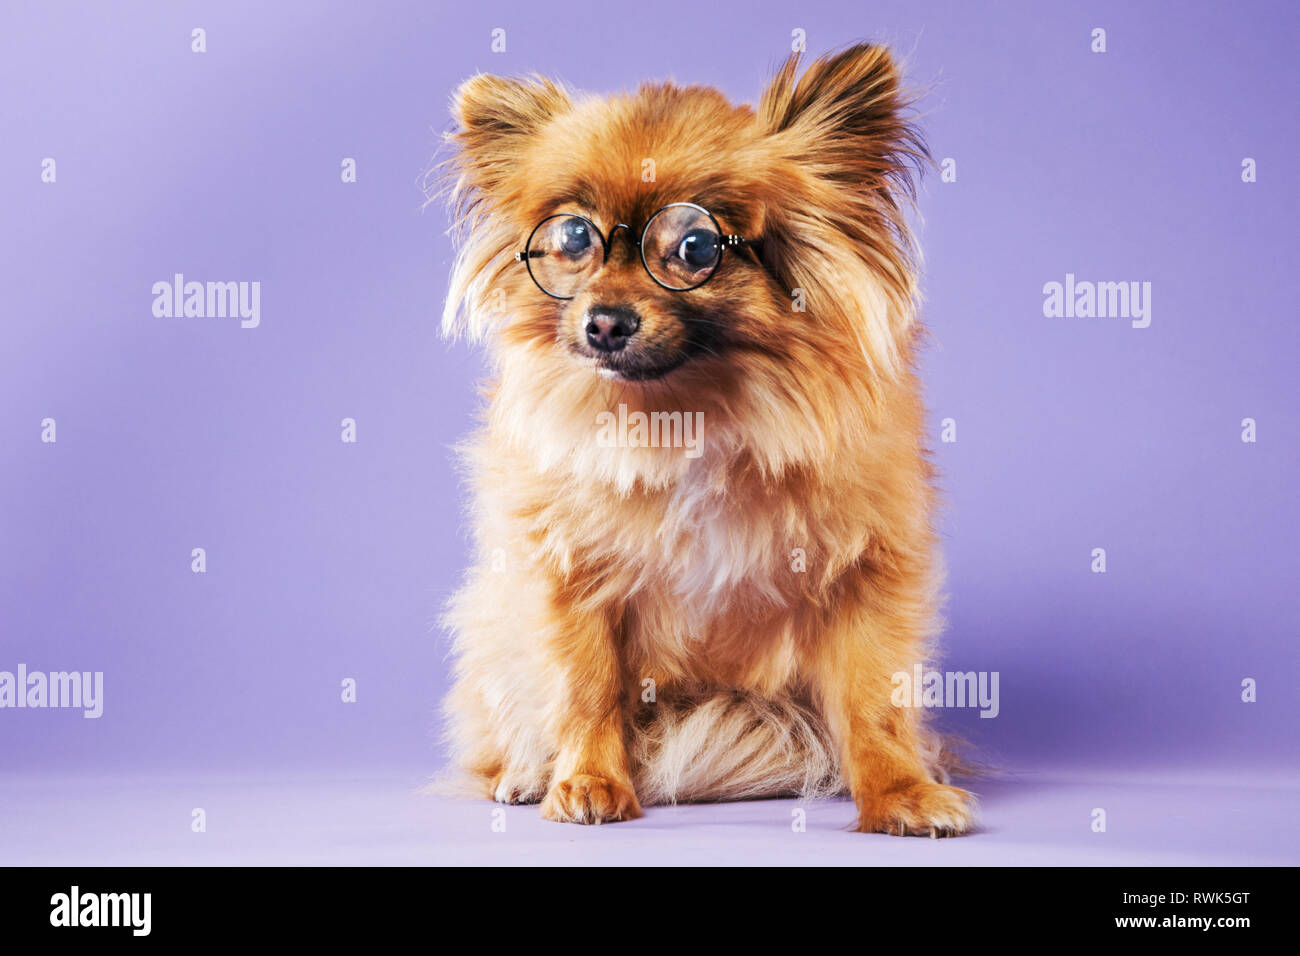 Full-body portrait of a Pomeranian dog wearing eyeglasses and looking directly at camera. - Stock Image